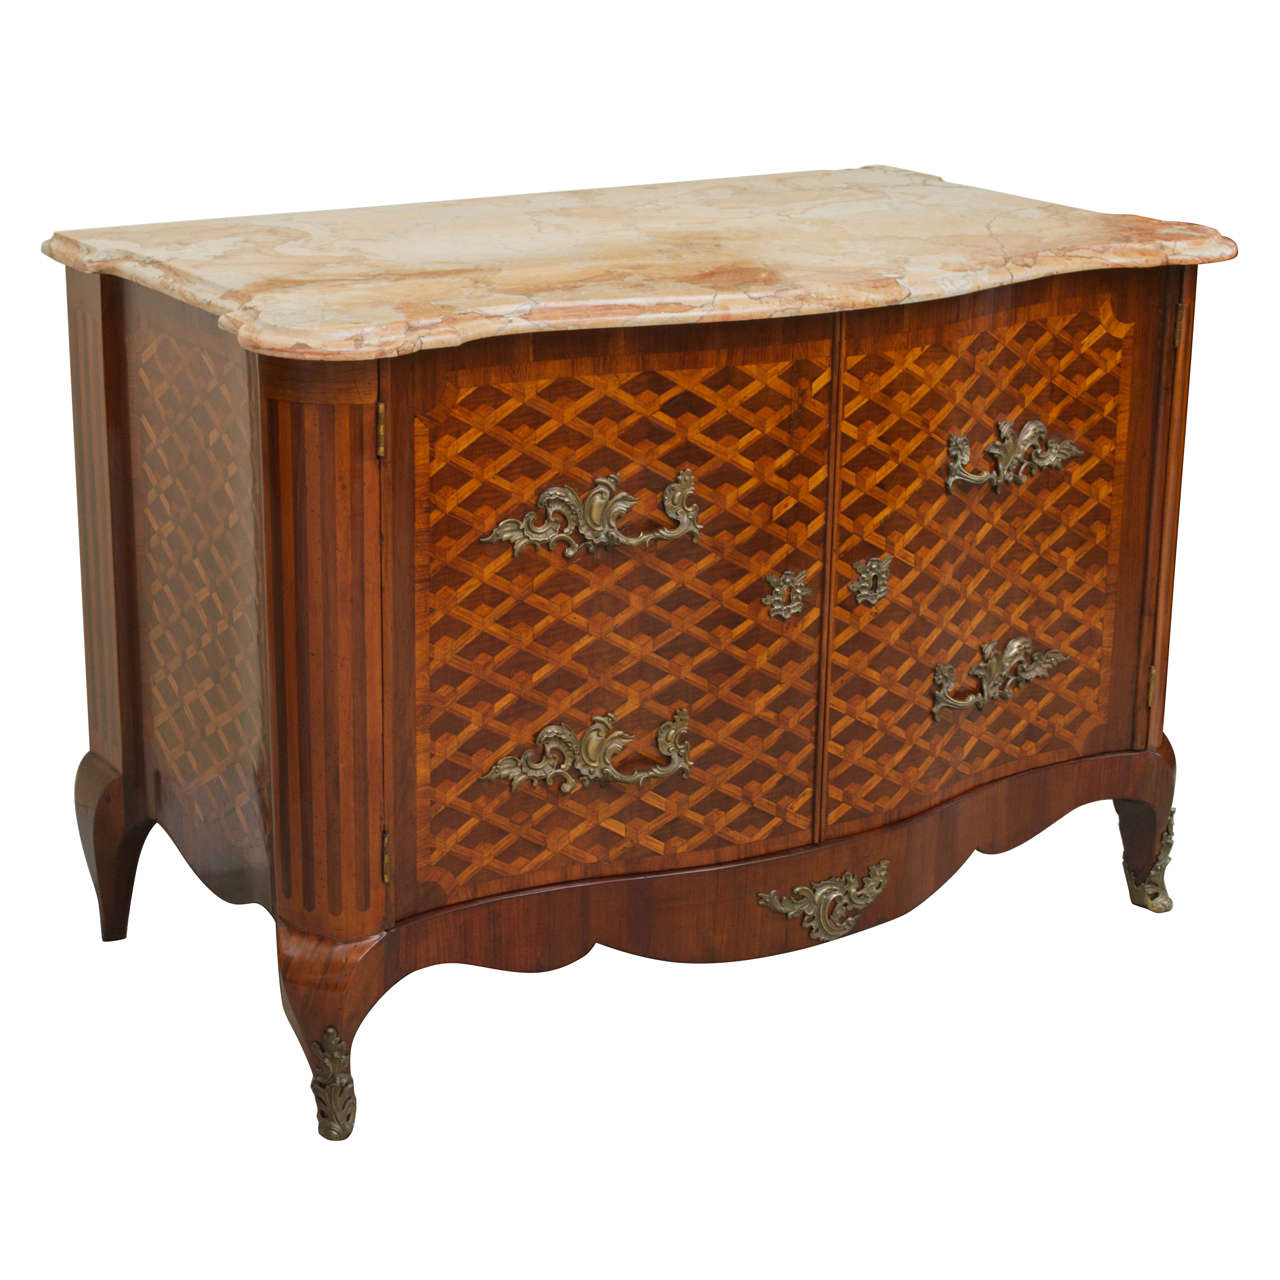 Louis Xv Style Walnut Fruitwood Parquetry Commode Marble Top Store